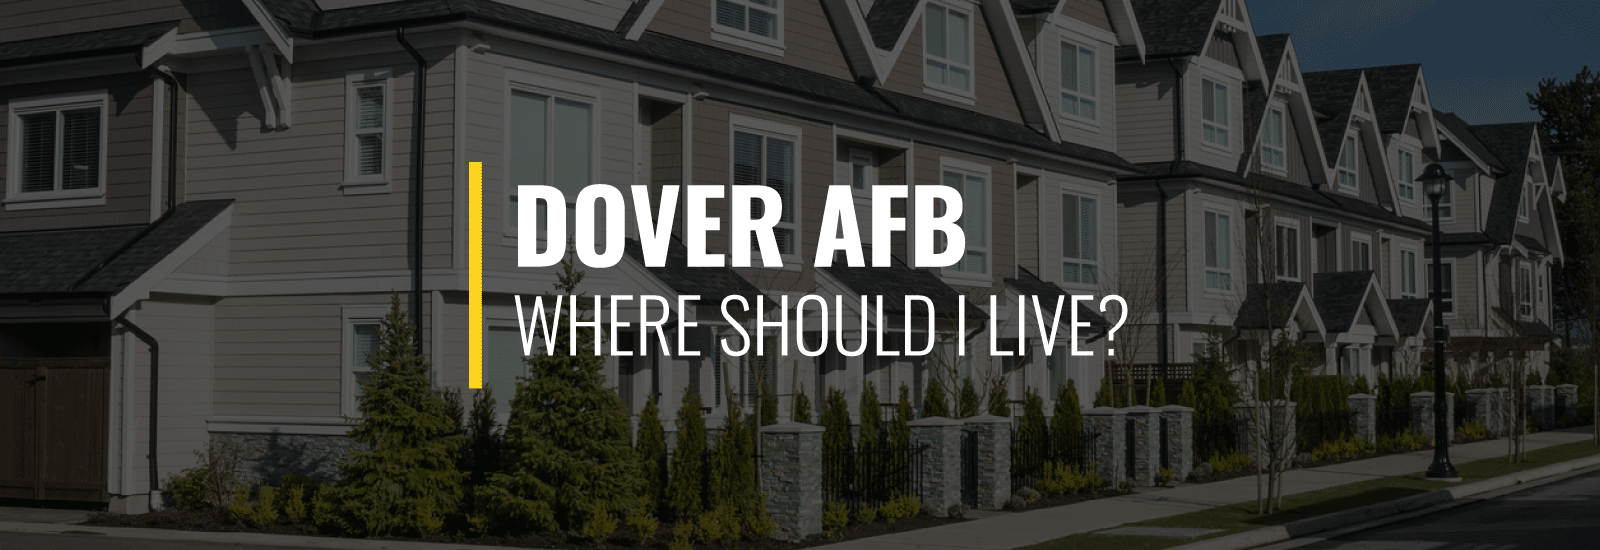 Where Should I Live Near Dover Air Force Base?